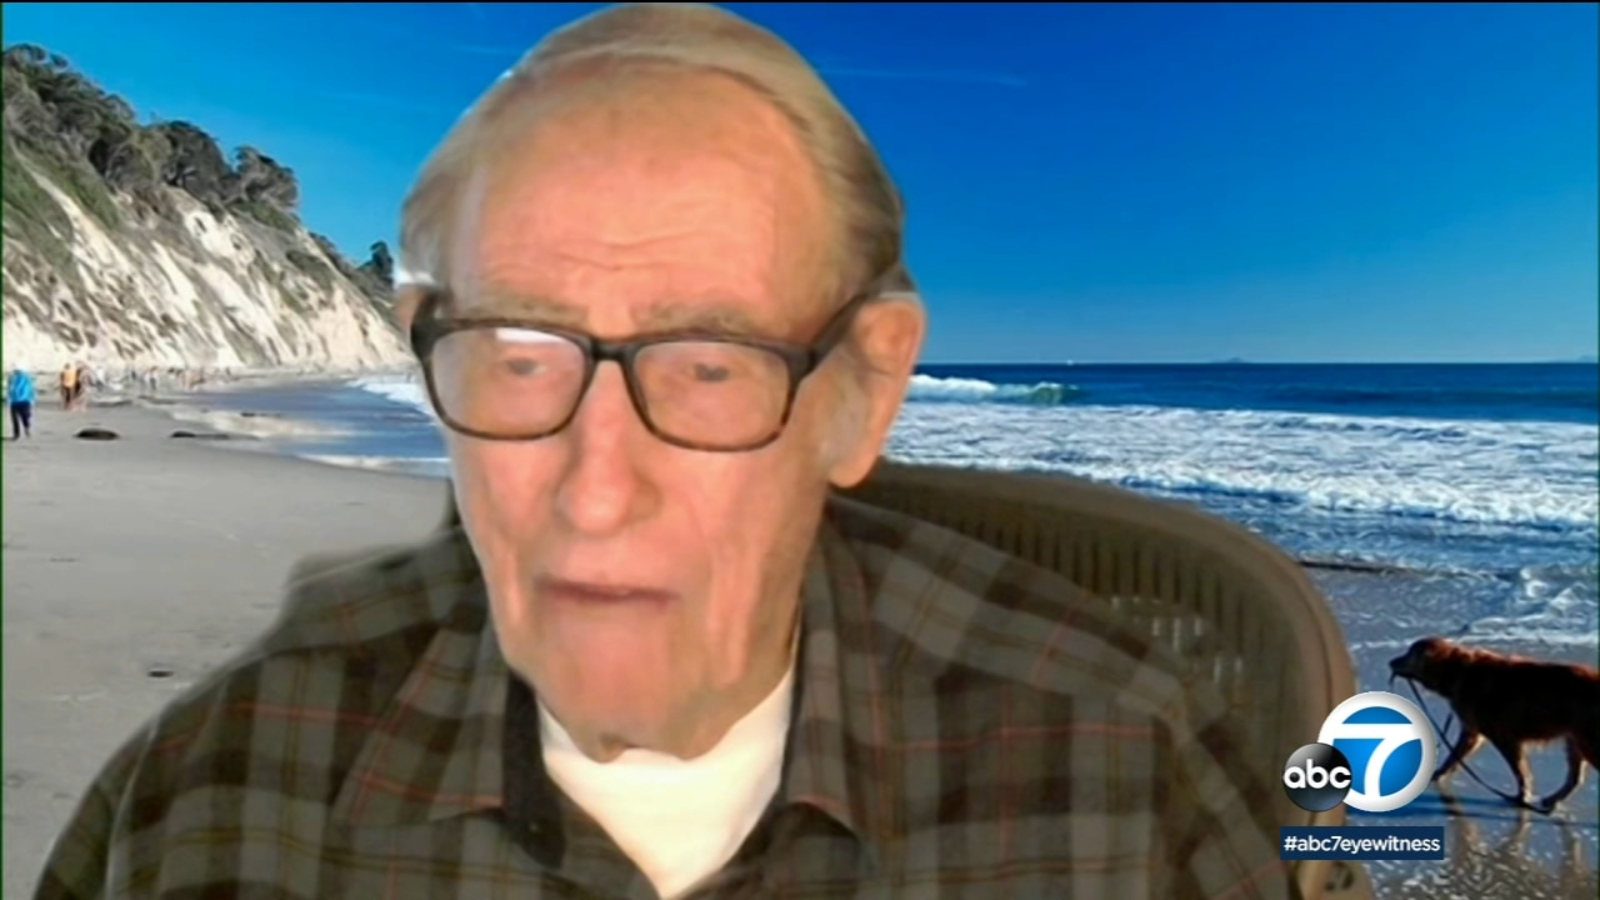 North Hollywood man, 90, shames AT&T into upgrading his internet by taking out newspaper ads - KABC-TV